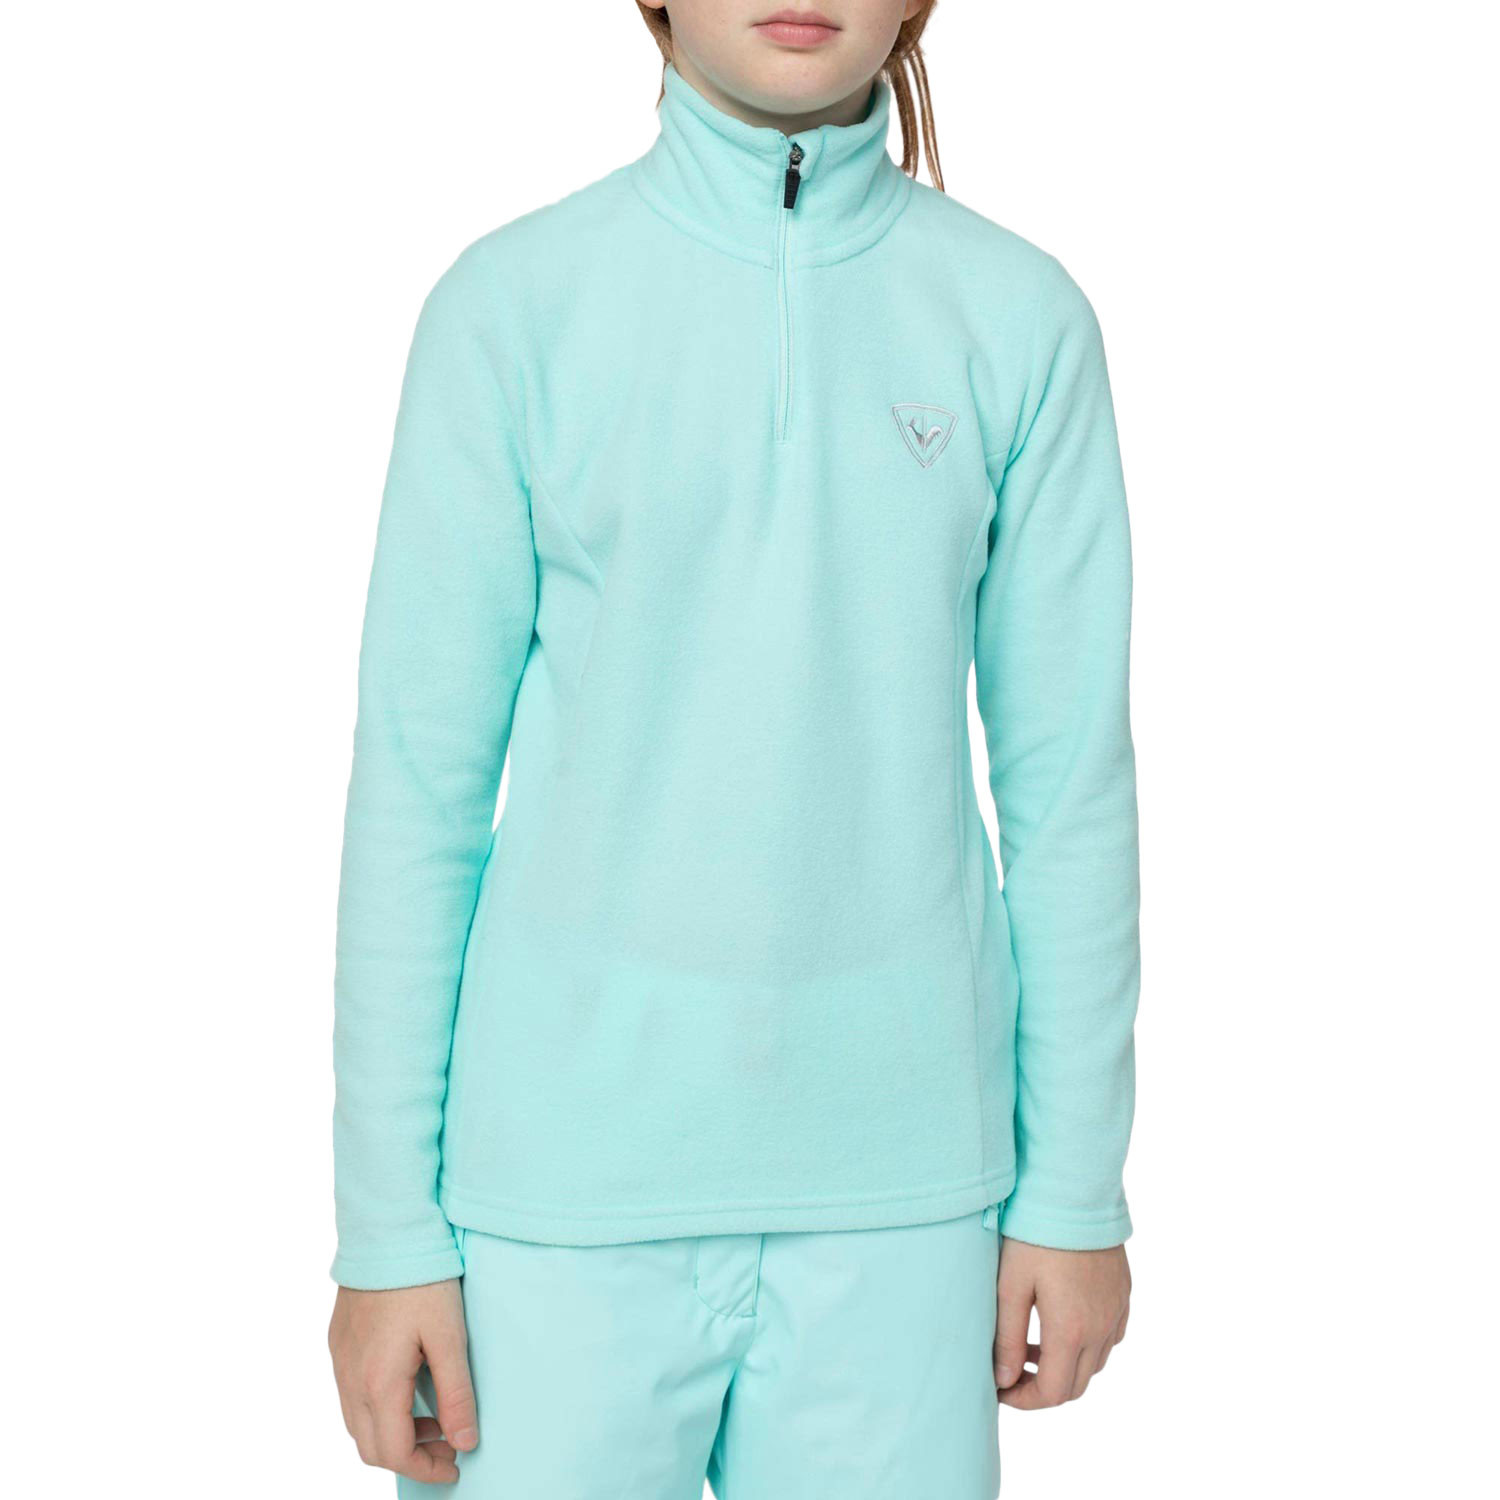 Girl Polaire 1/2 Zip Fille